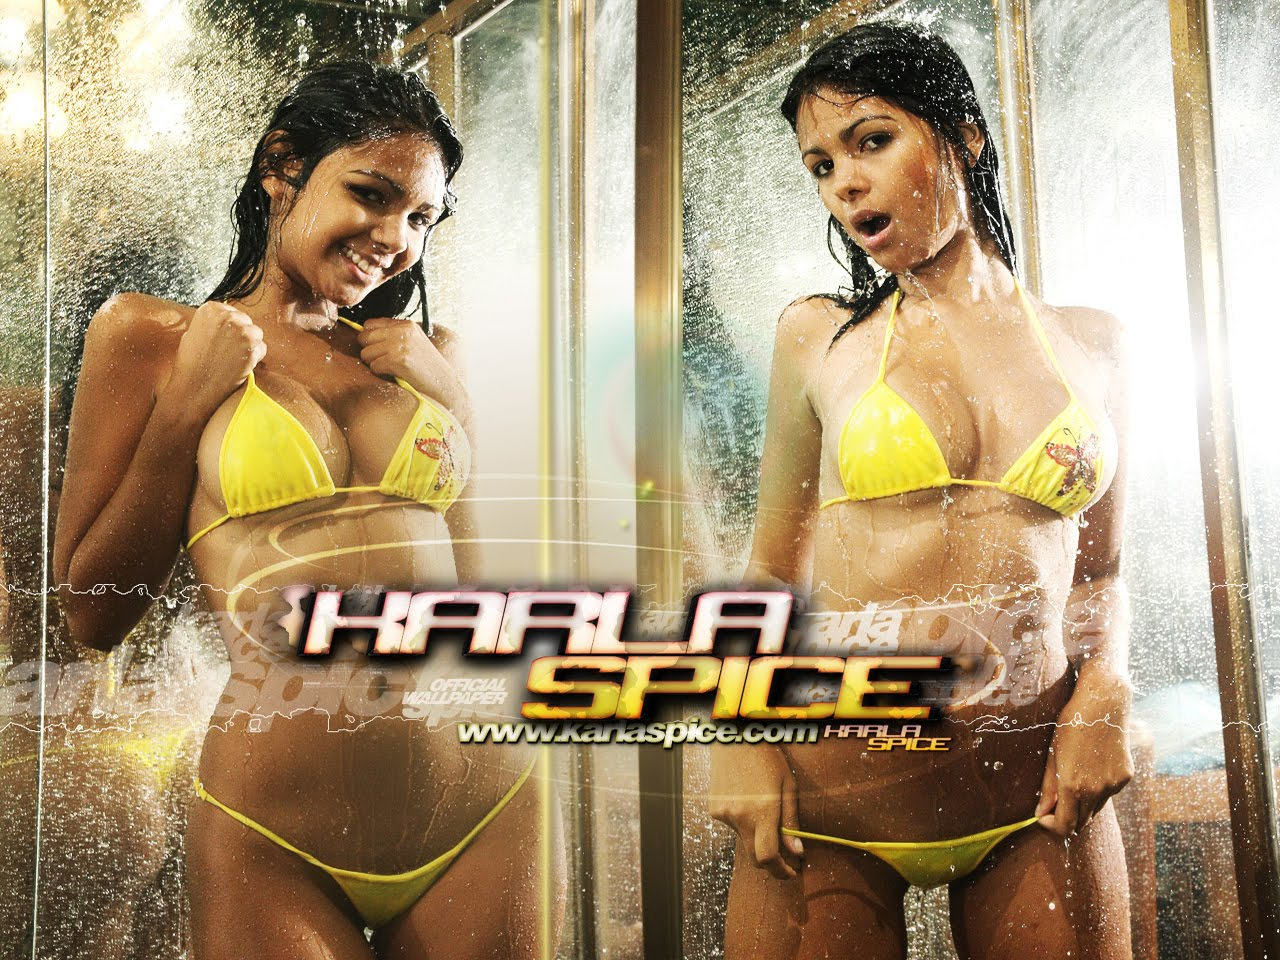 Wallpapers de Karla Spice